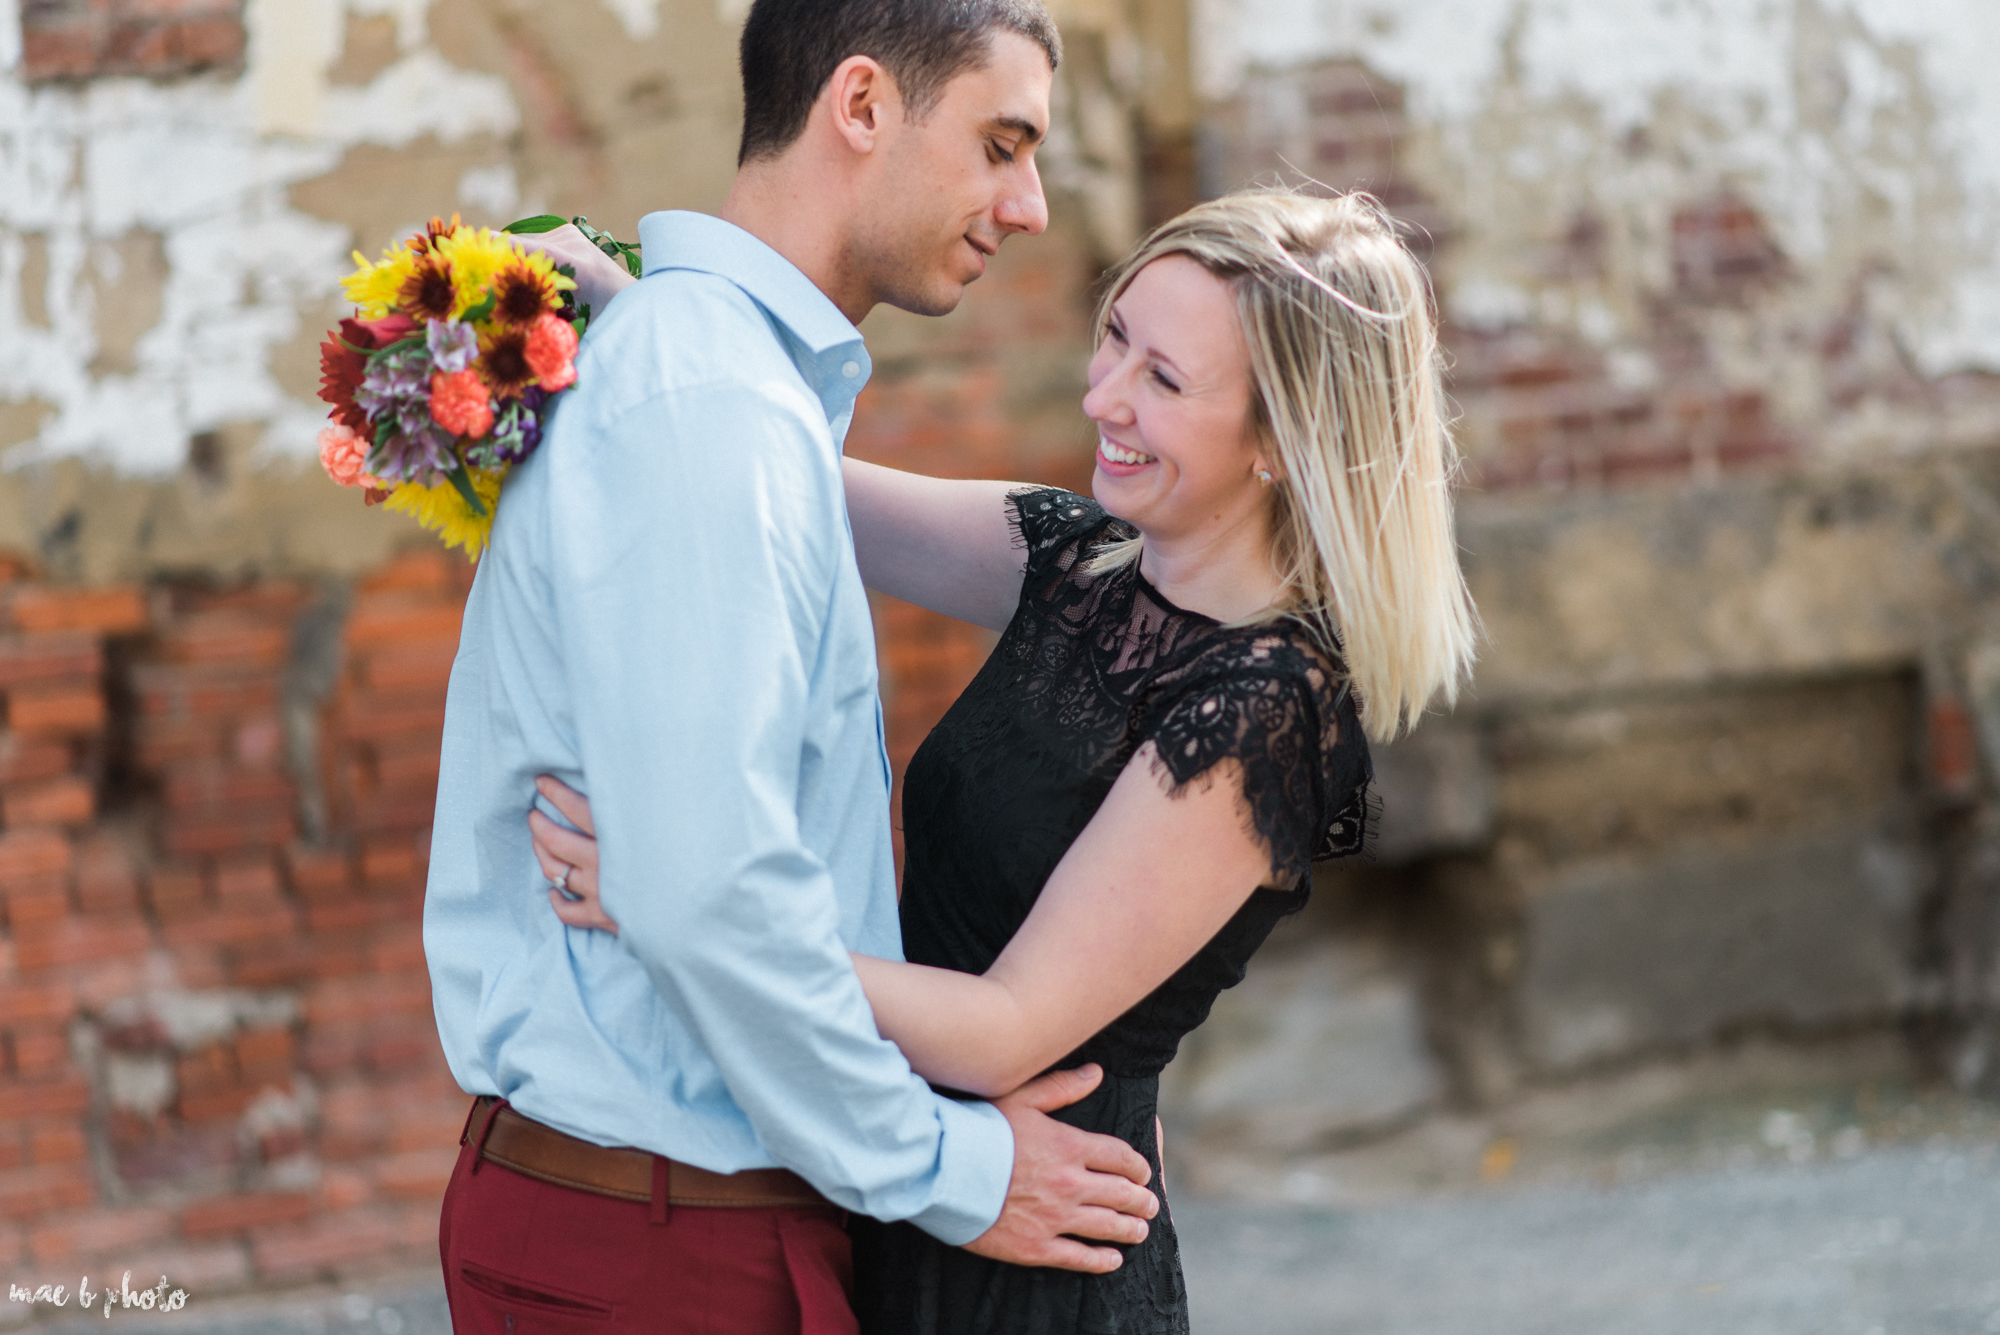 Emily & Michael's Lifestyle Engagement Session in Youngstown Ohio by Mae B Photo-51.jpg